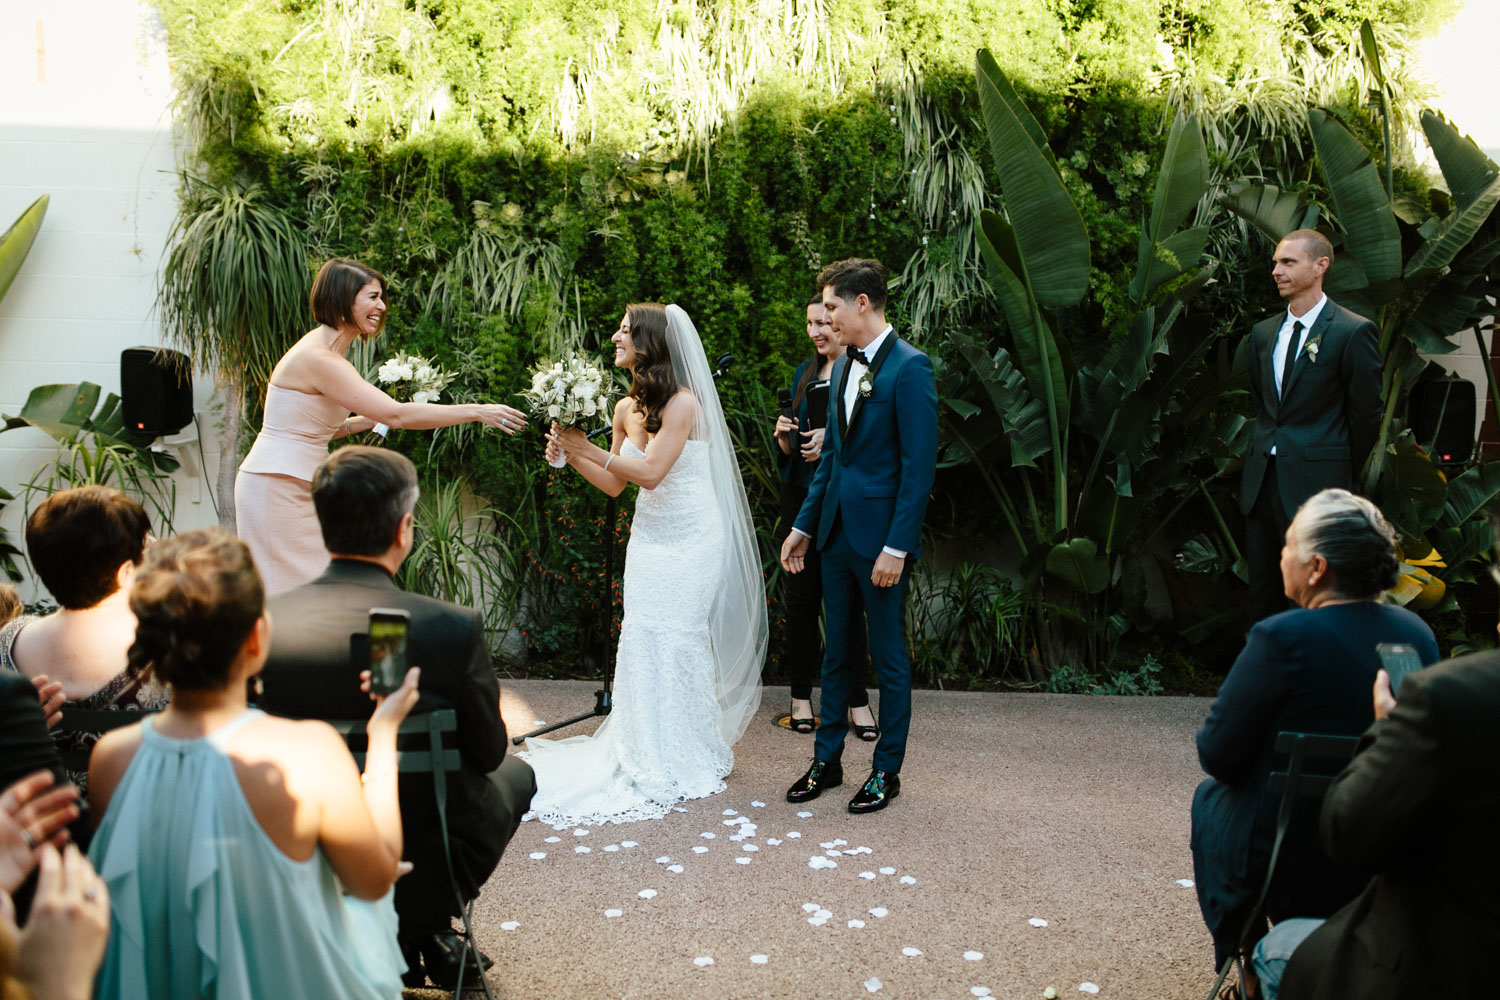 Los Angeles Wedding Photographer, Ace Hotel, Millwick Wedding - The Gathering Season x weareleoandkat 067.JPG